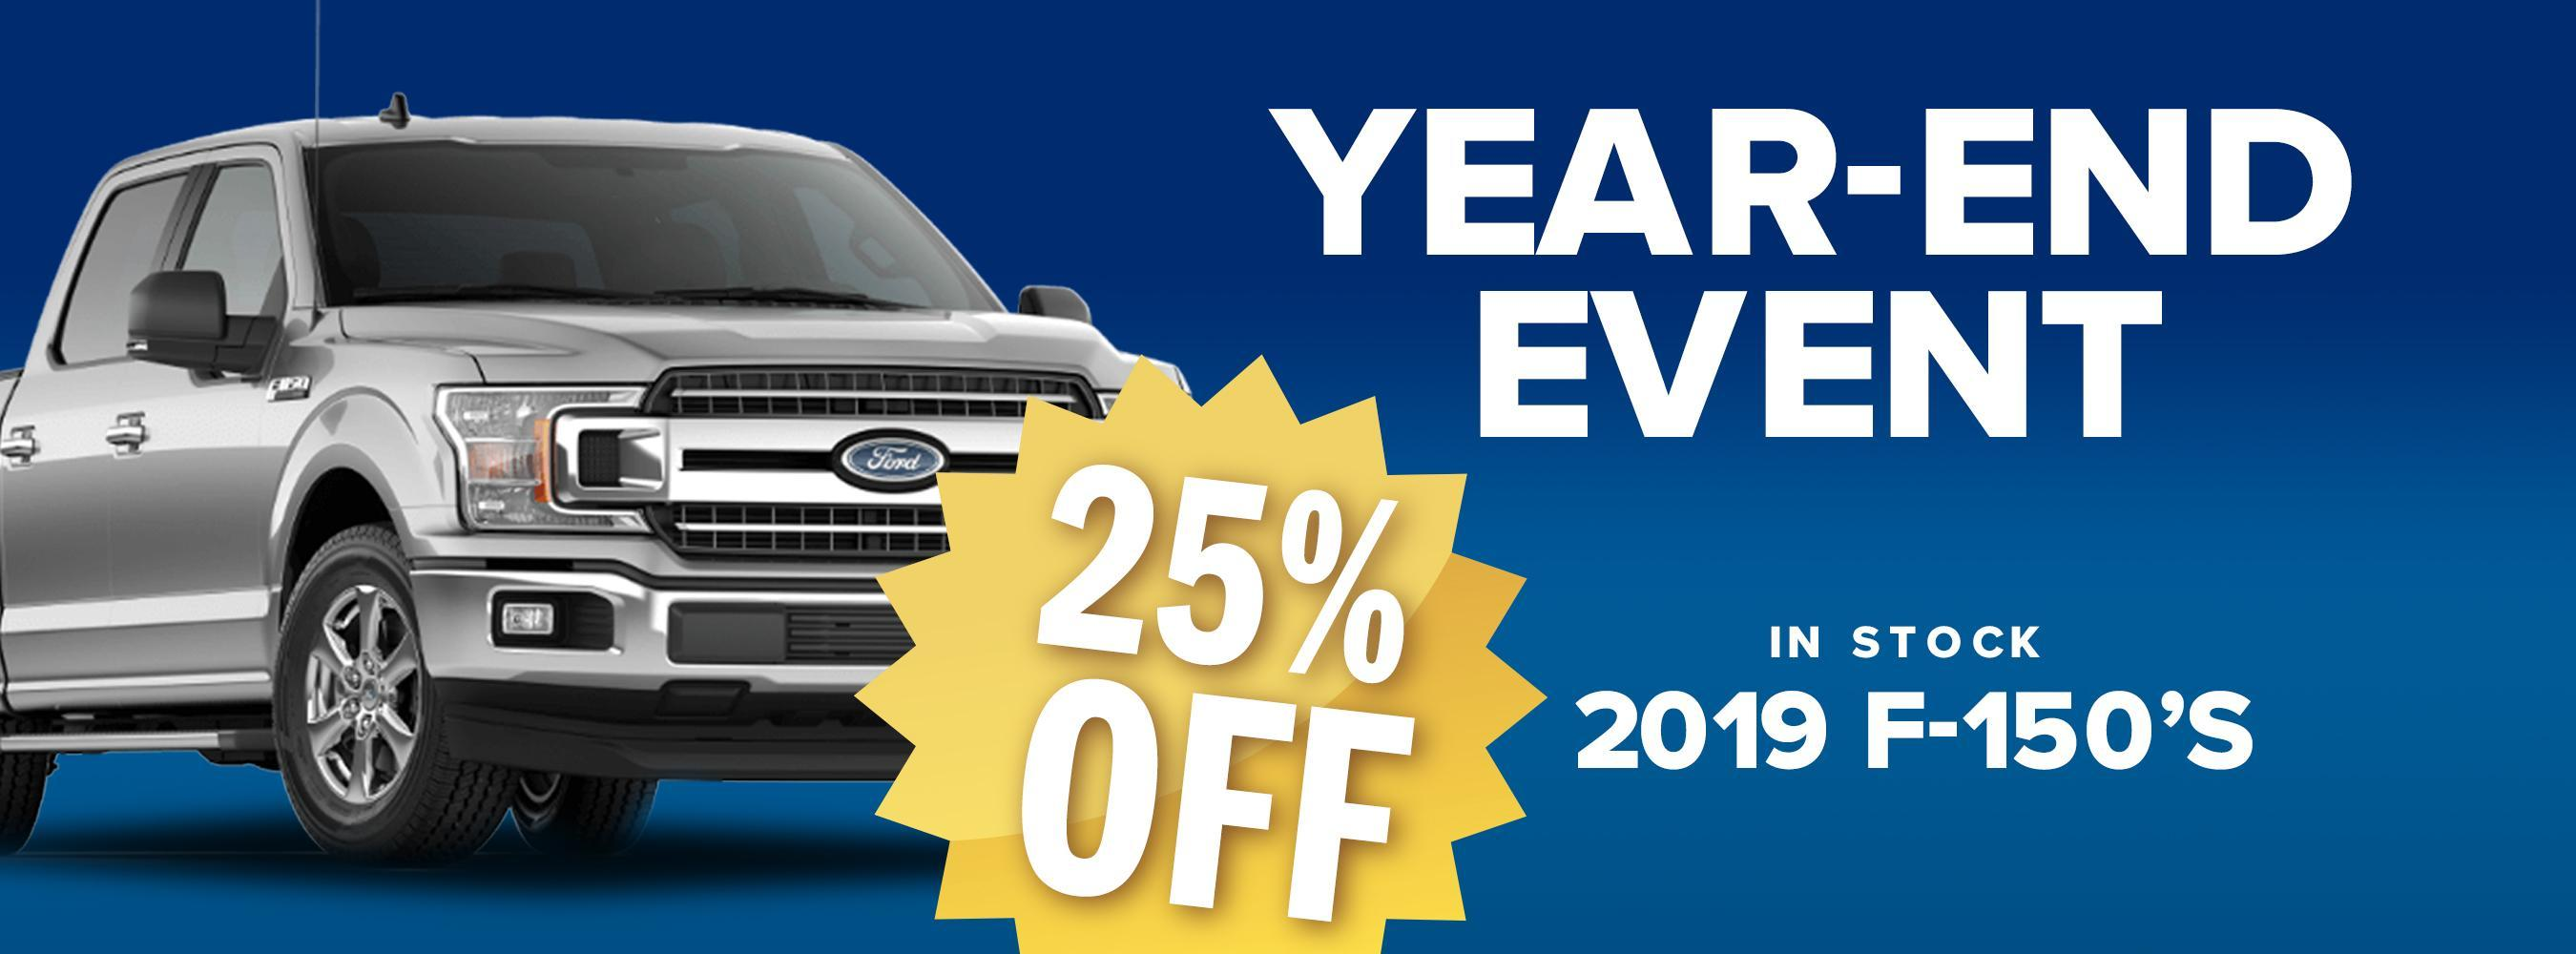 25% Off 2019 Ford F-150's